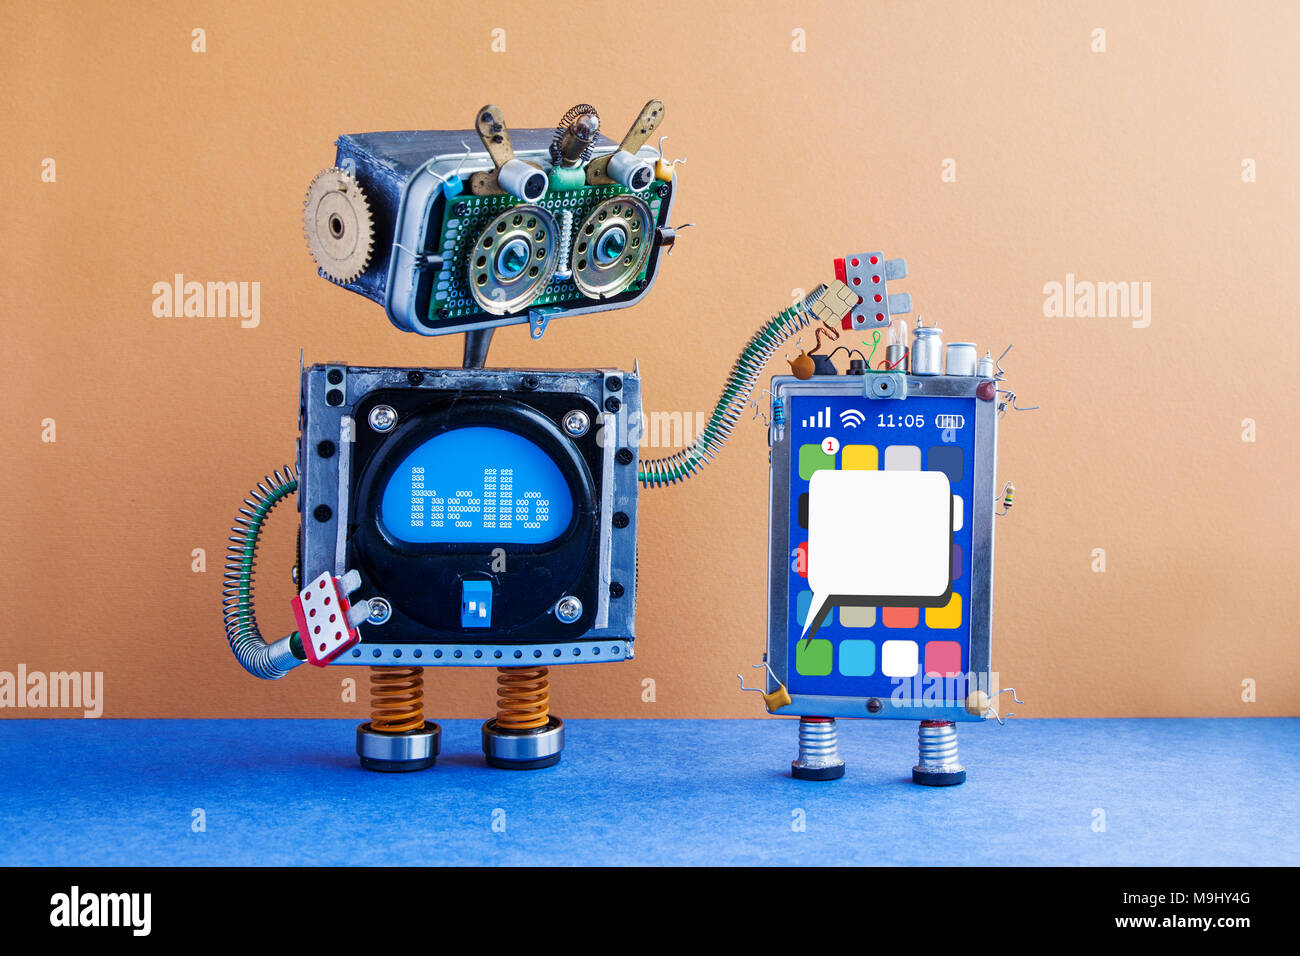 Big robot and mobile smartphone gadget. Funny robotic toy characters, creative design touch screen phone device, light bulb capacitors sim card. Blank sms message on display. Brown wall, blue floor background. - Stock Image